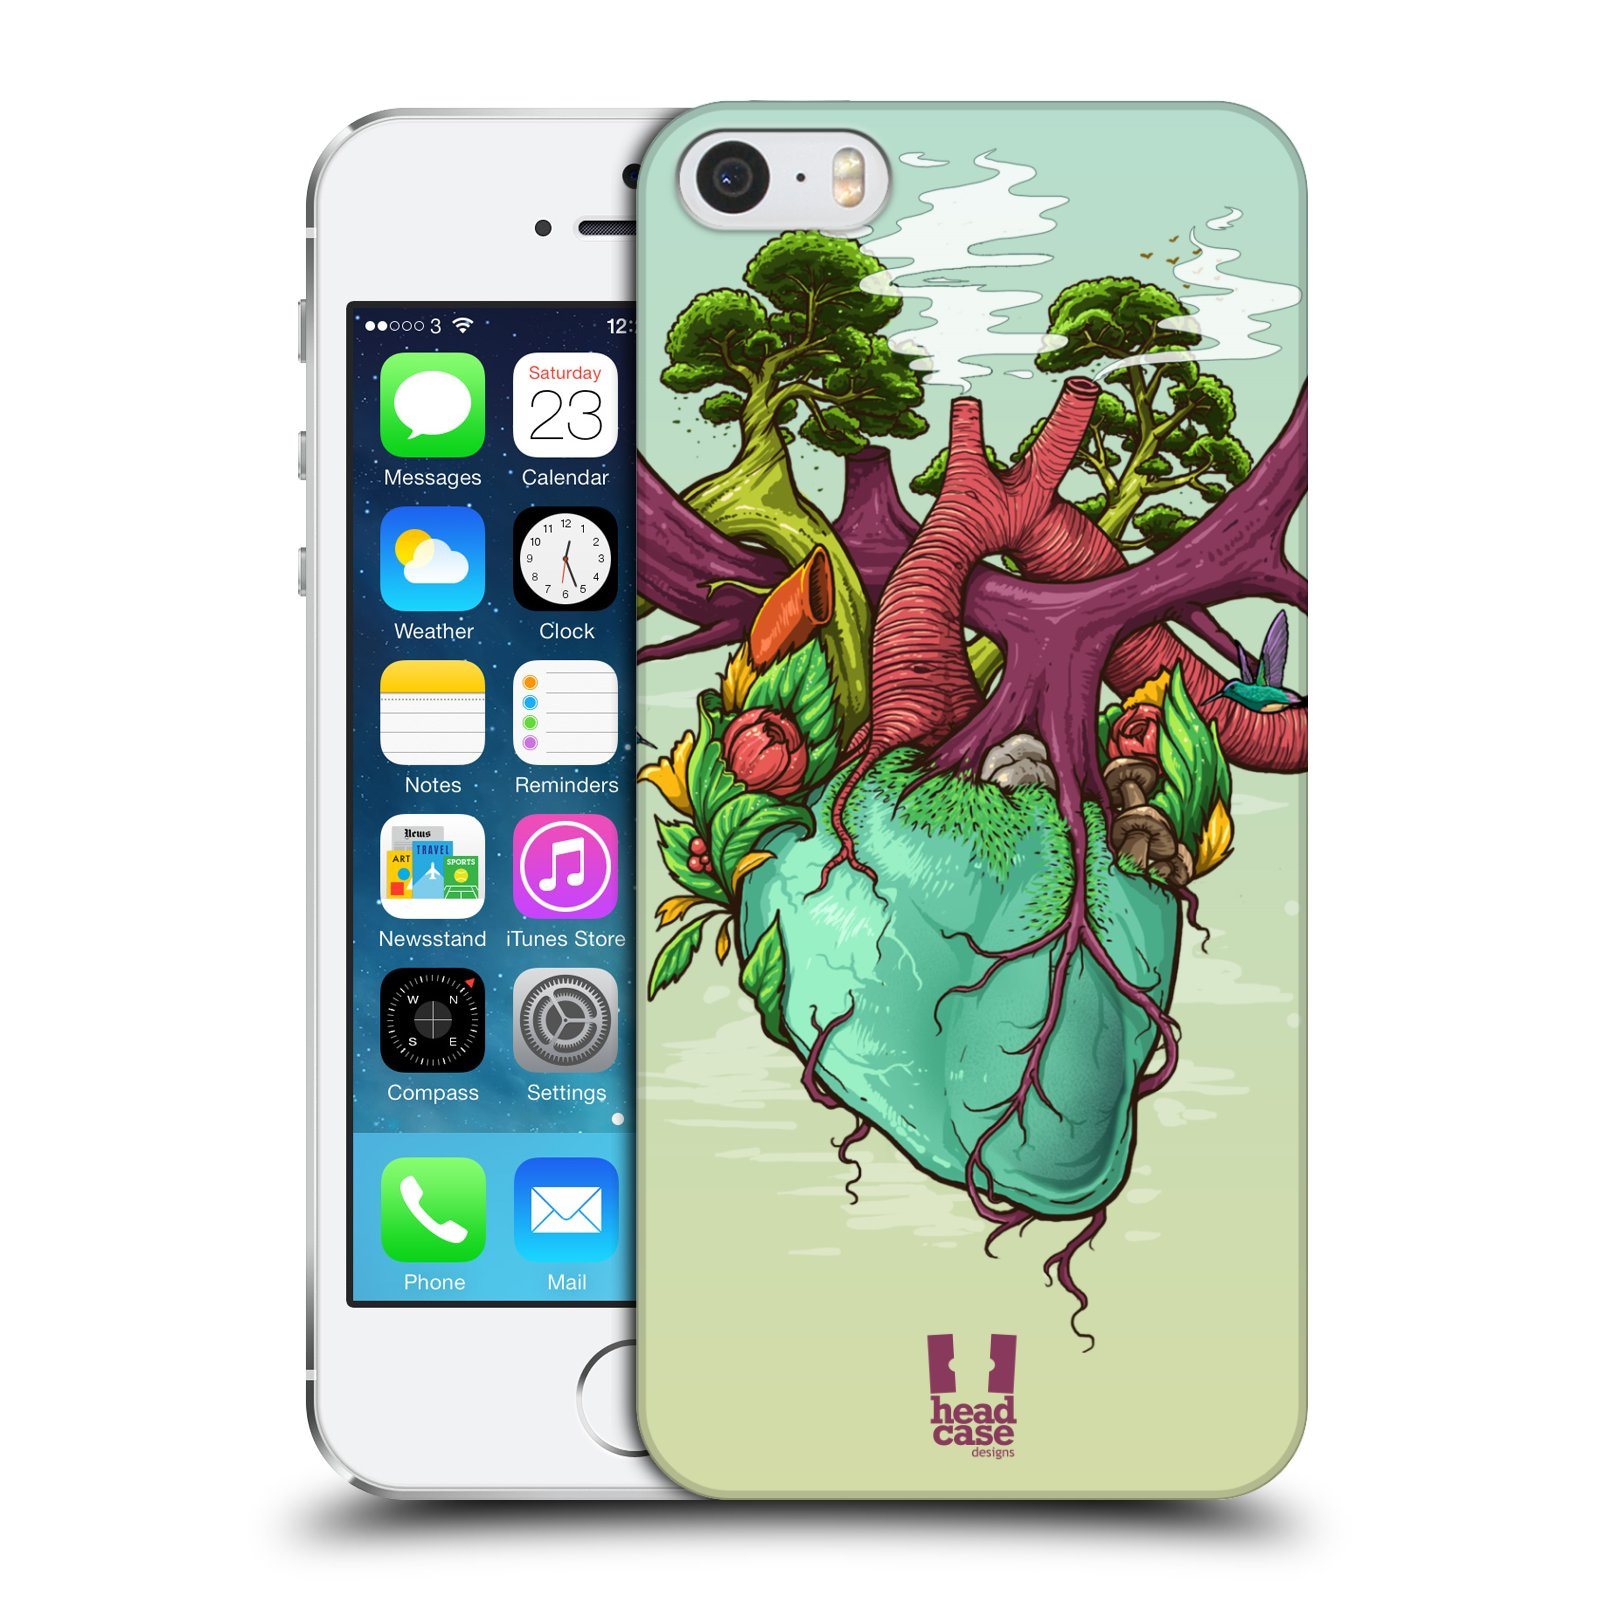 HEAD CASE DESIGNS HUMAN ANATOMY CASE FOR APPLE iPHONE 5 5S